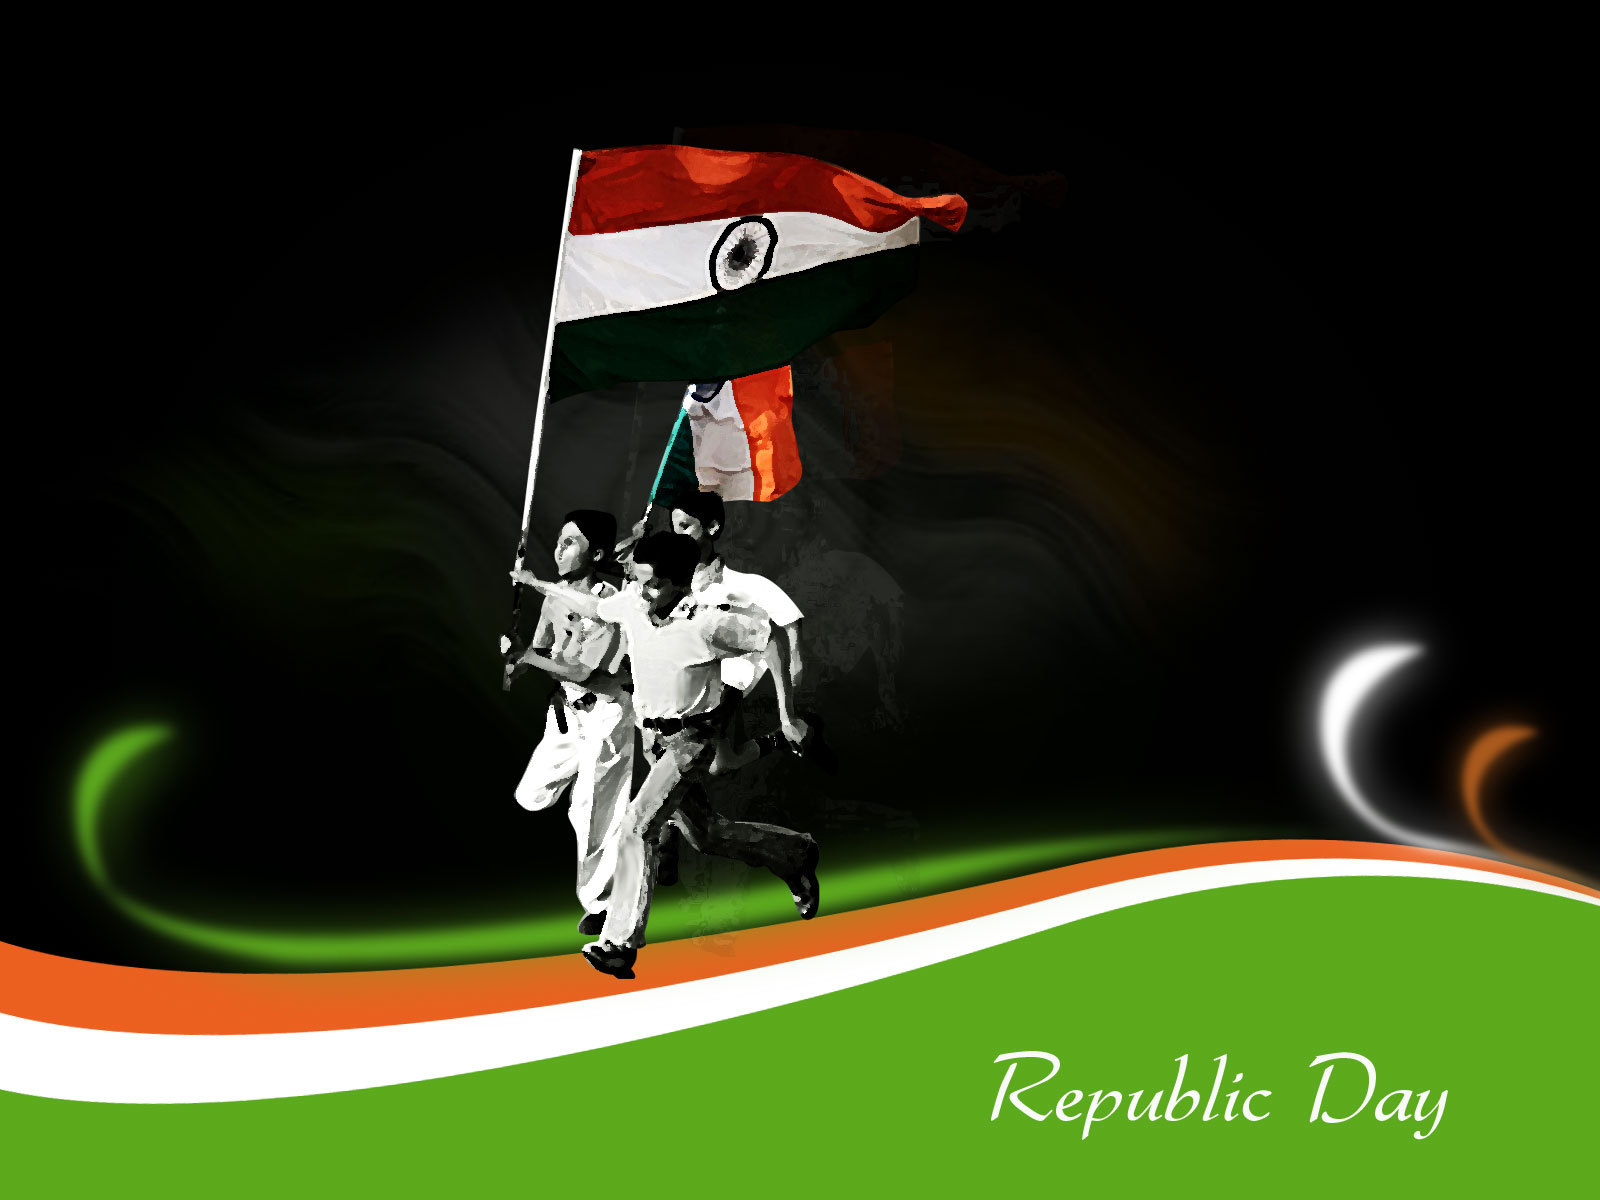 Desktop Wallpapers: Republic Day Of India | 1600 x 1200 jpeg 245kB